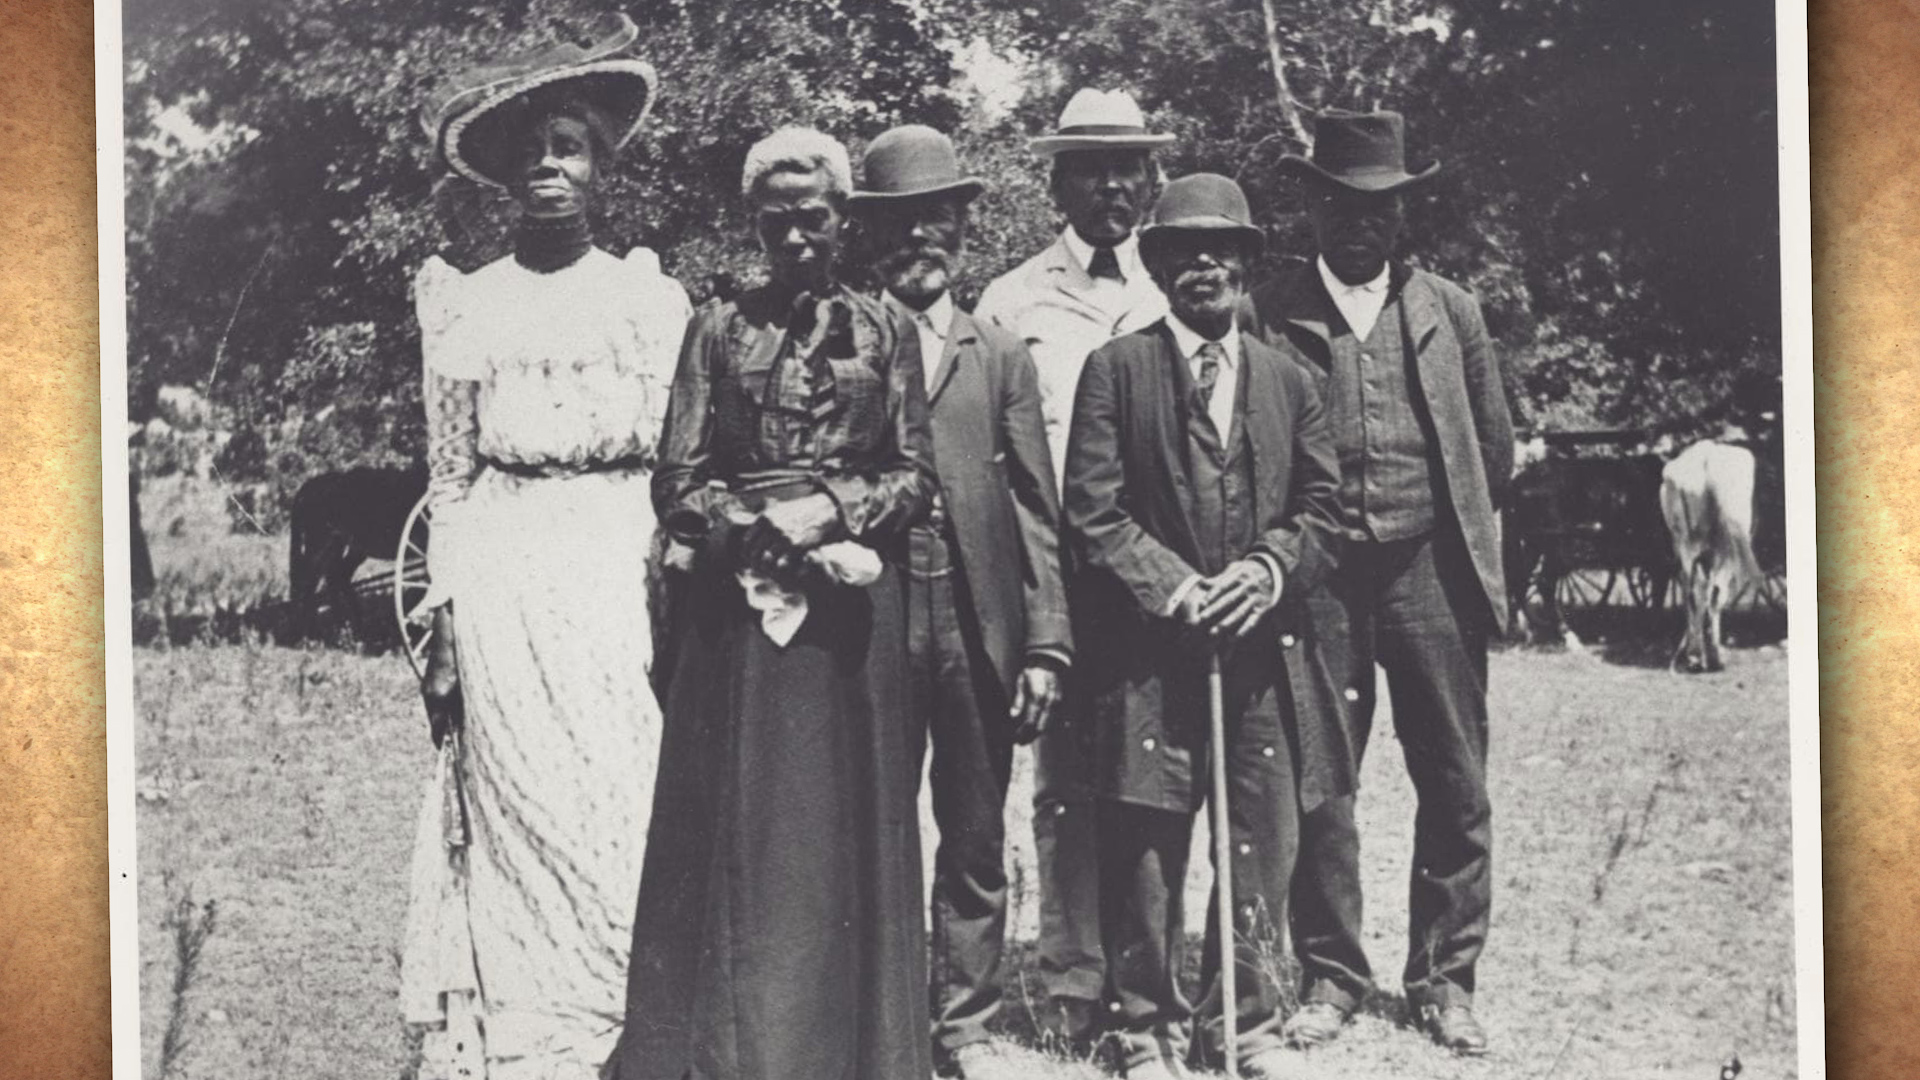 Twitter Users Honor Juneteenth On Its 154th Anniversary